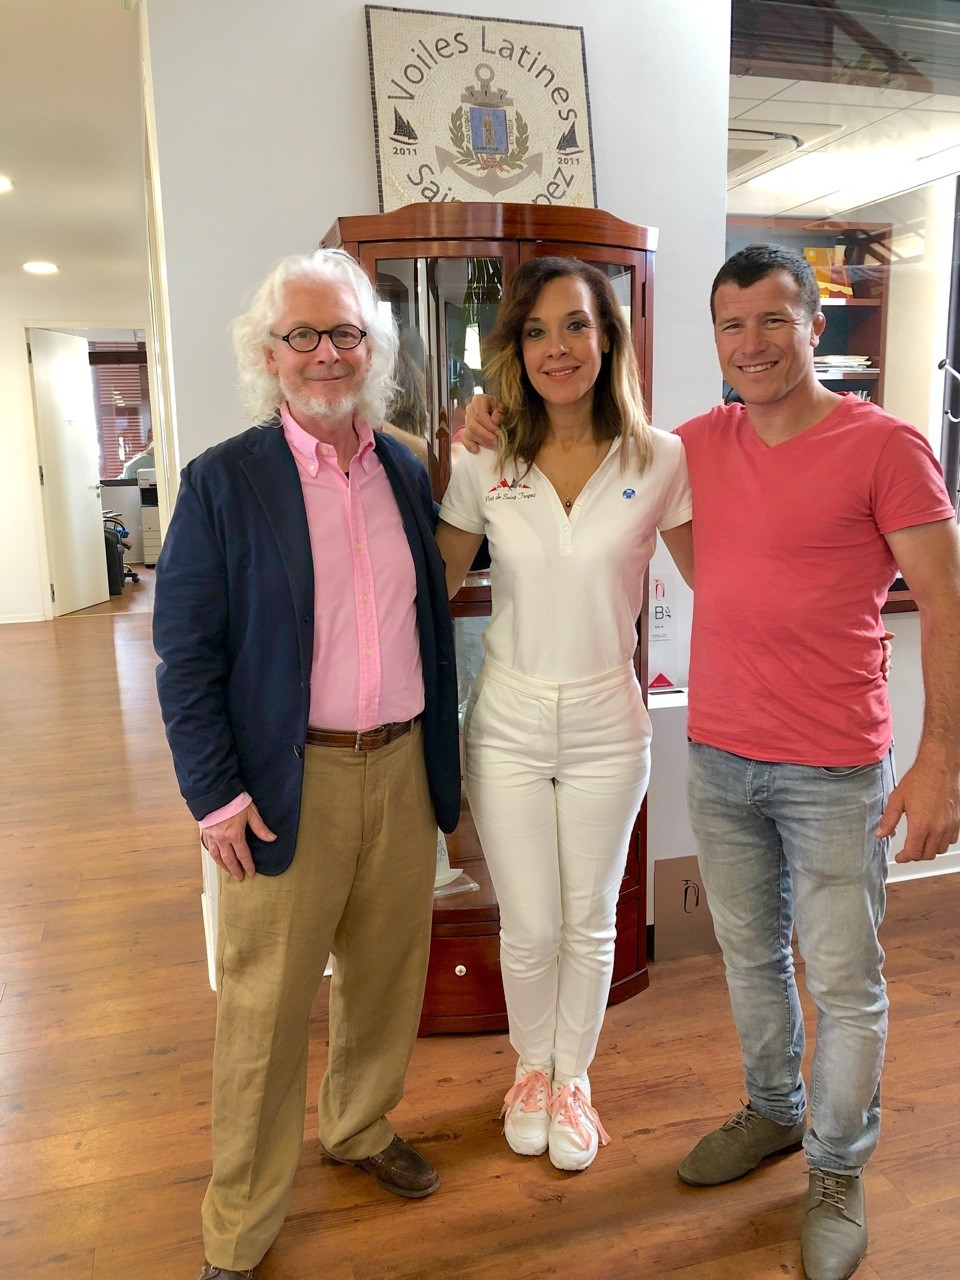 Peter Graham ROI, with Anne-Marie Dandin- Head of Communications at The Port of Saint Tropez and Sebastien Marquez, Sculptor (L-R)